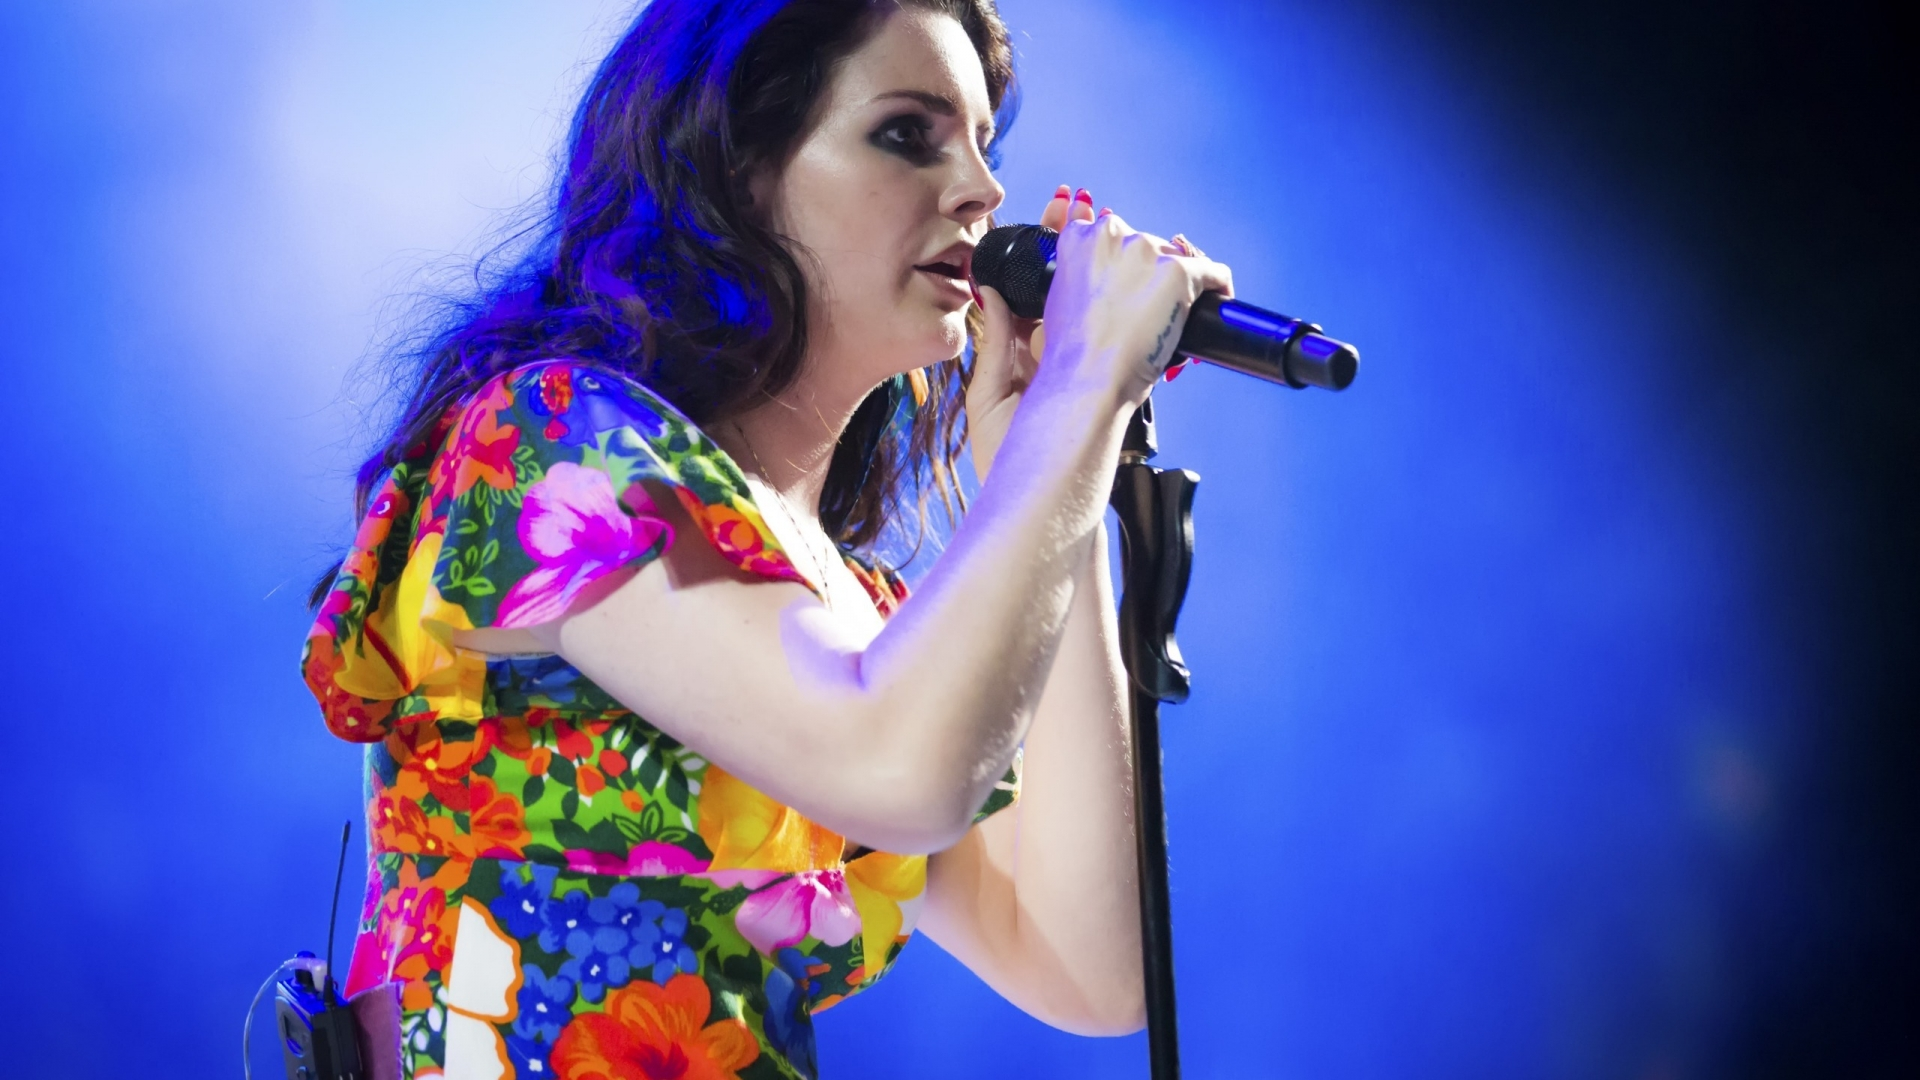 Lana Del Rey Performing Coachella for 1920 x 1080 HDTV 1080p resolution